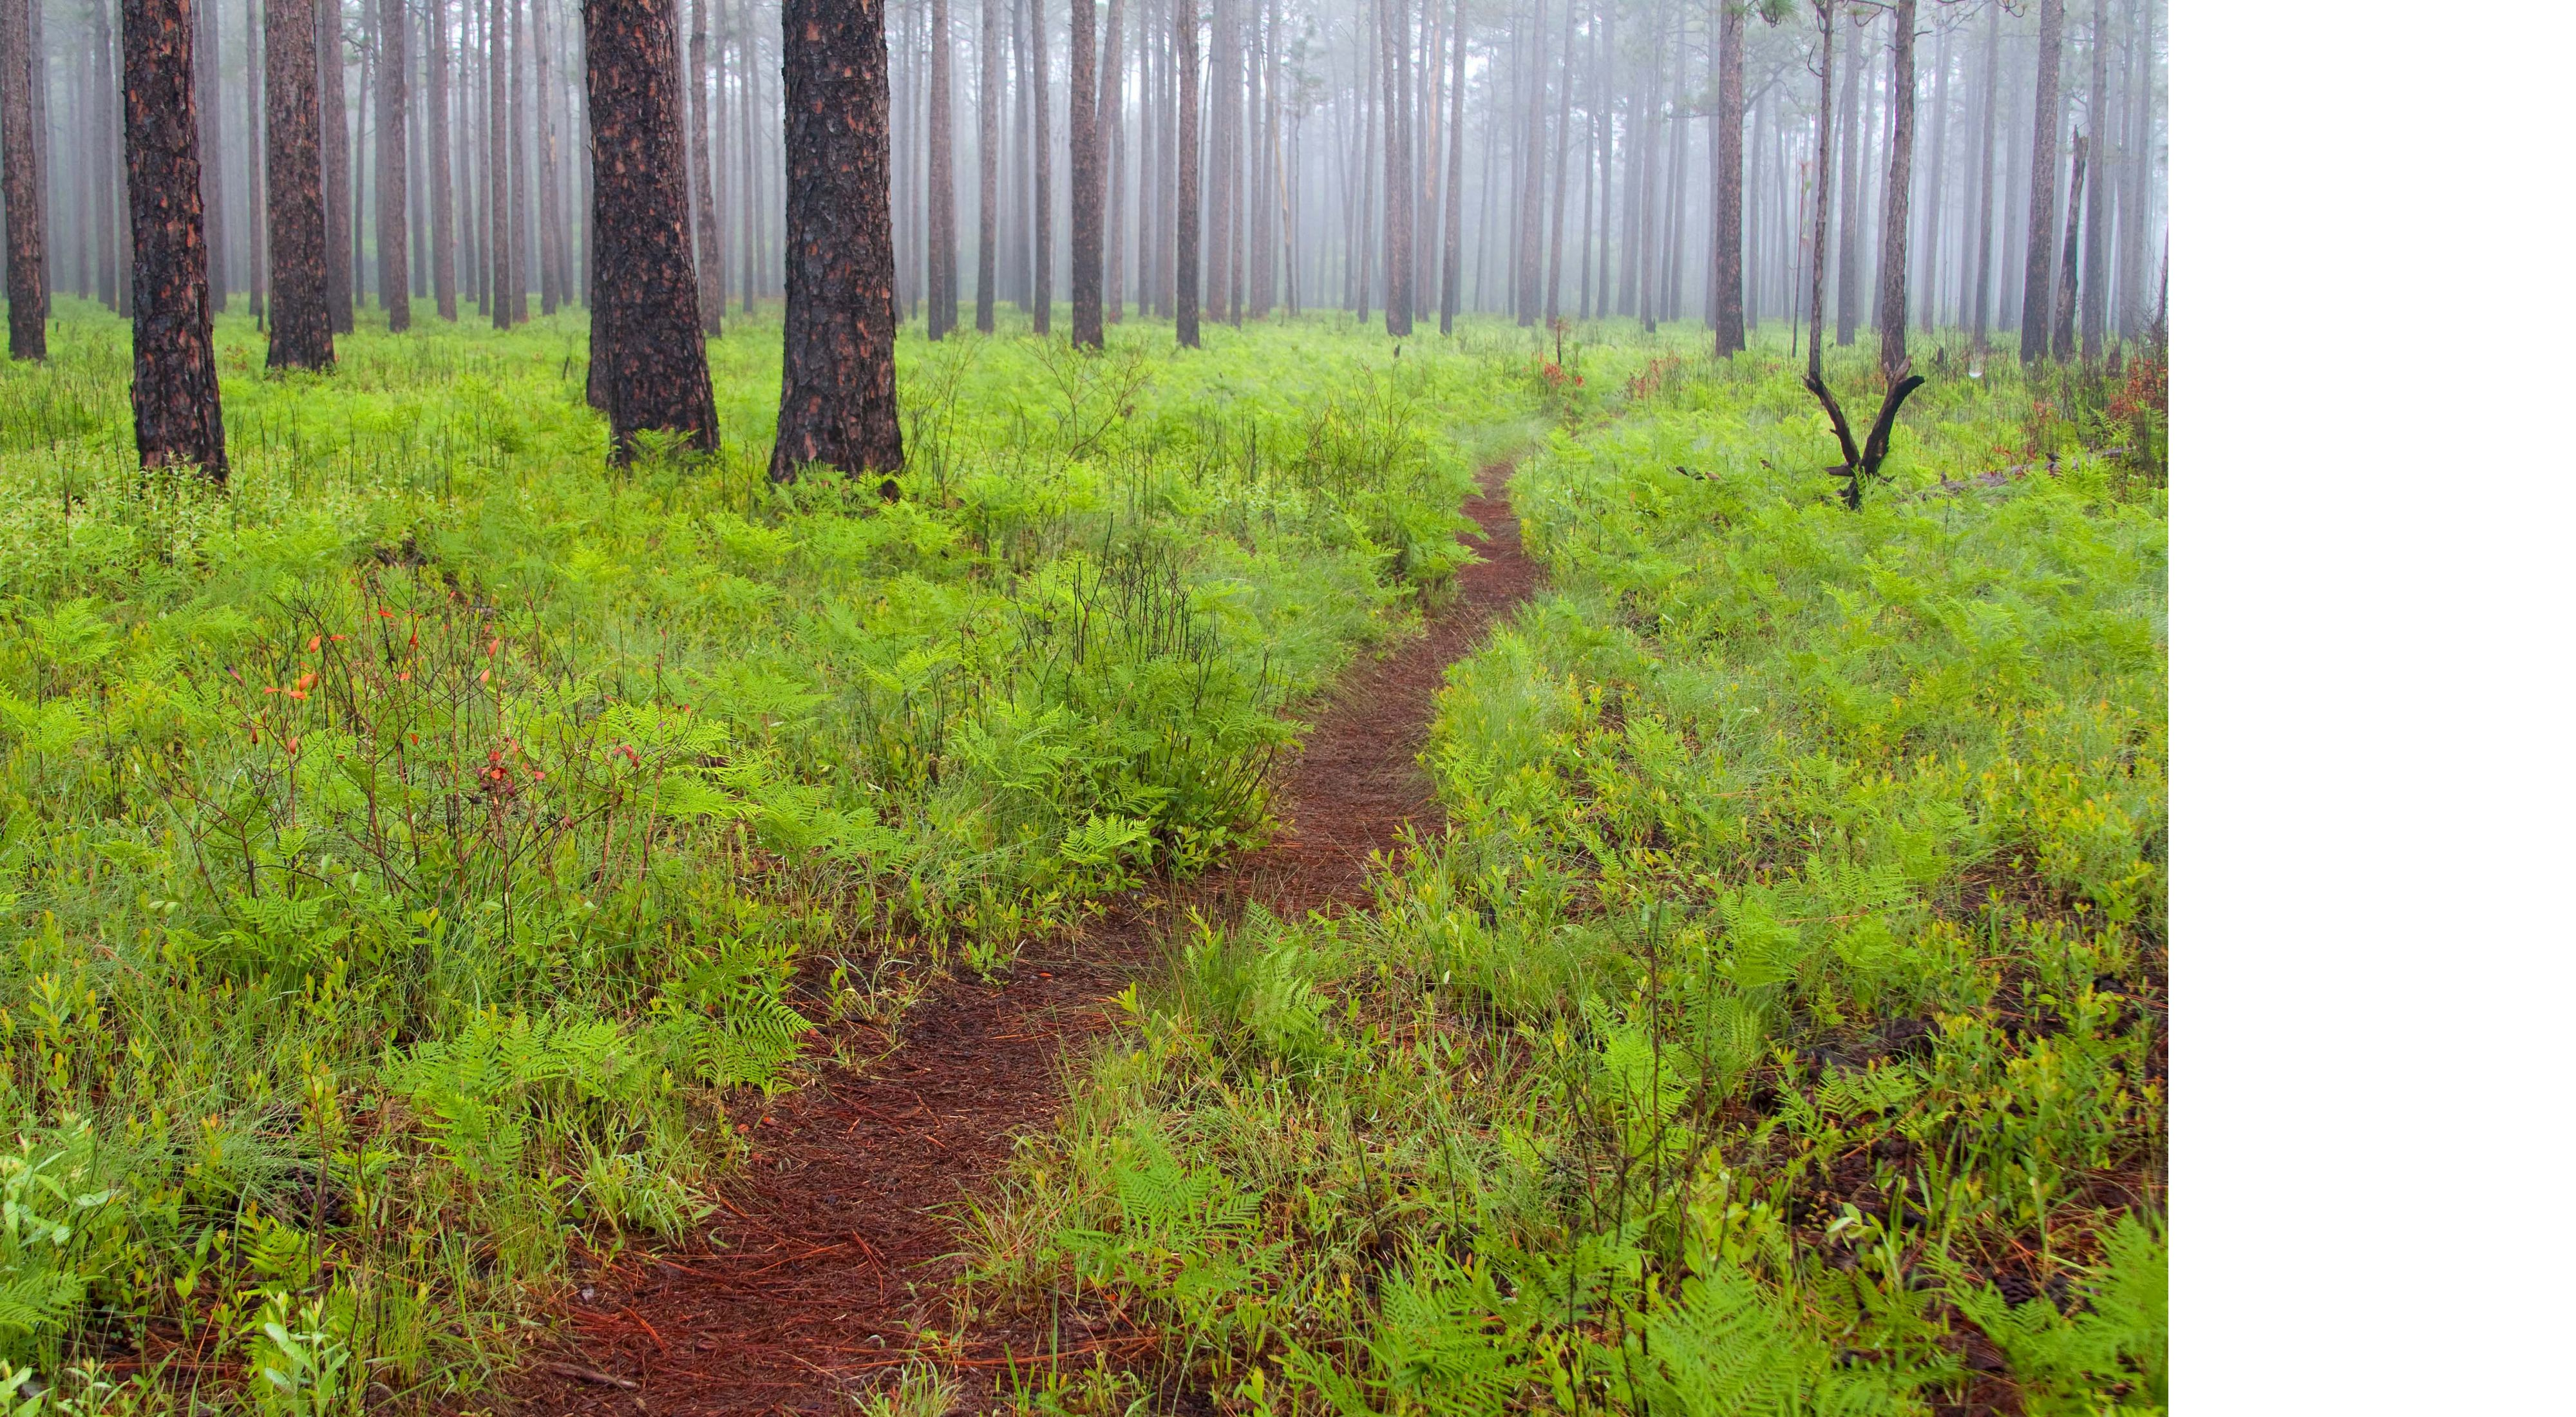 A trail through ferns and other undergrowth in a foggy pine forest.